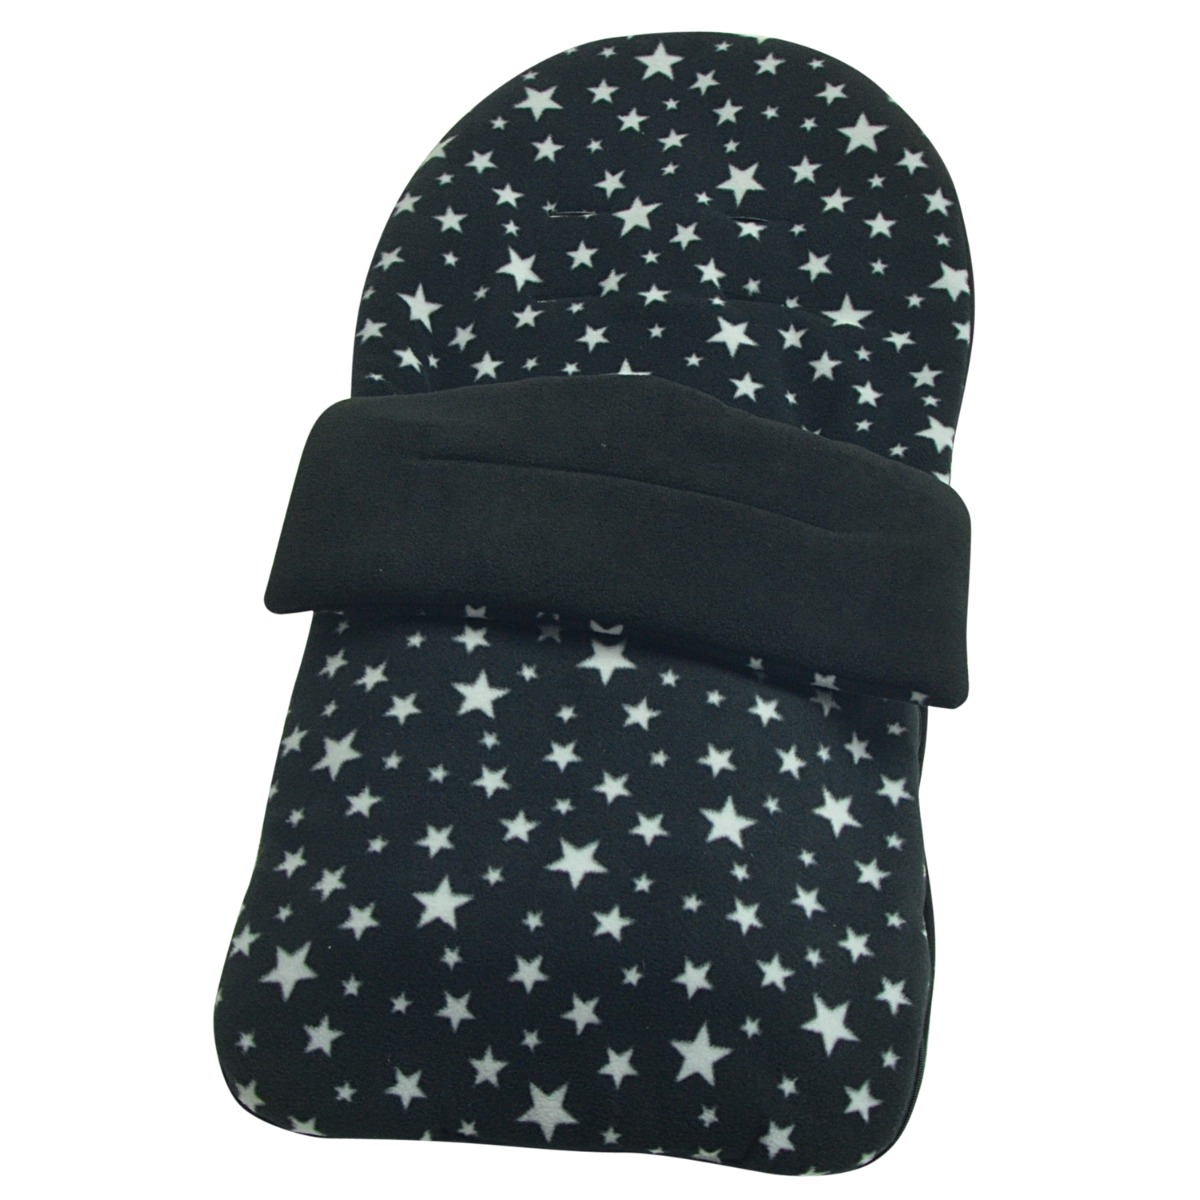 Black Outer Blue Star Fleece Footmuff Cosy Toes Compatible My Babiie Mb300